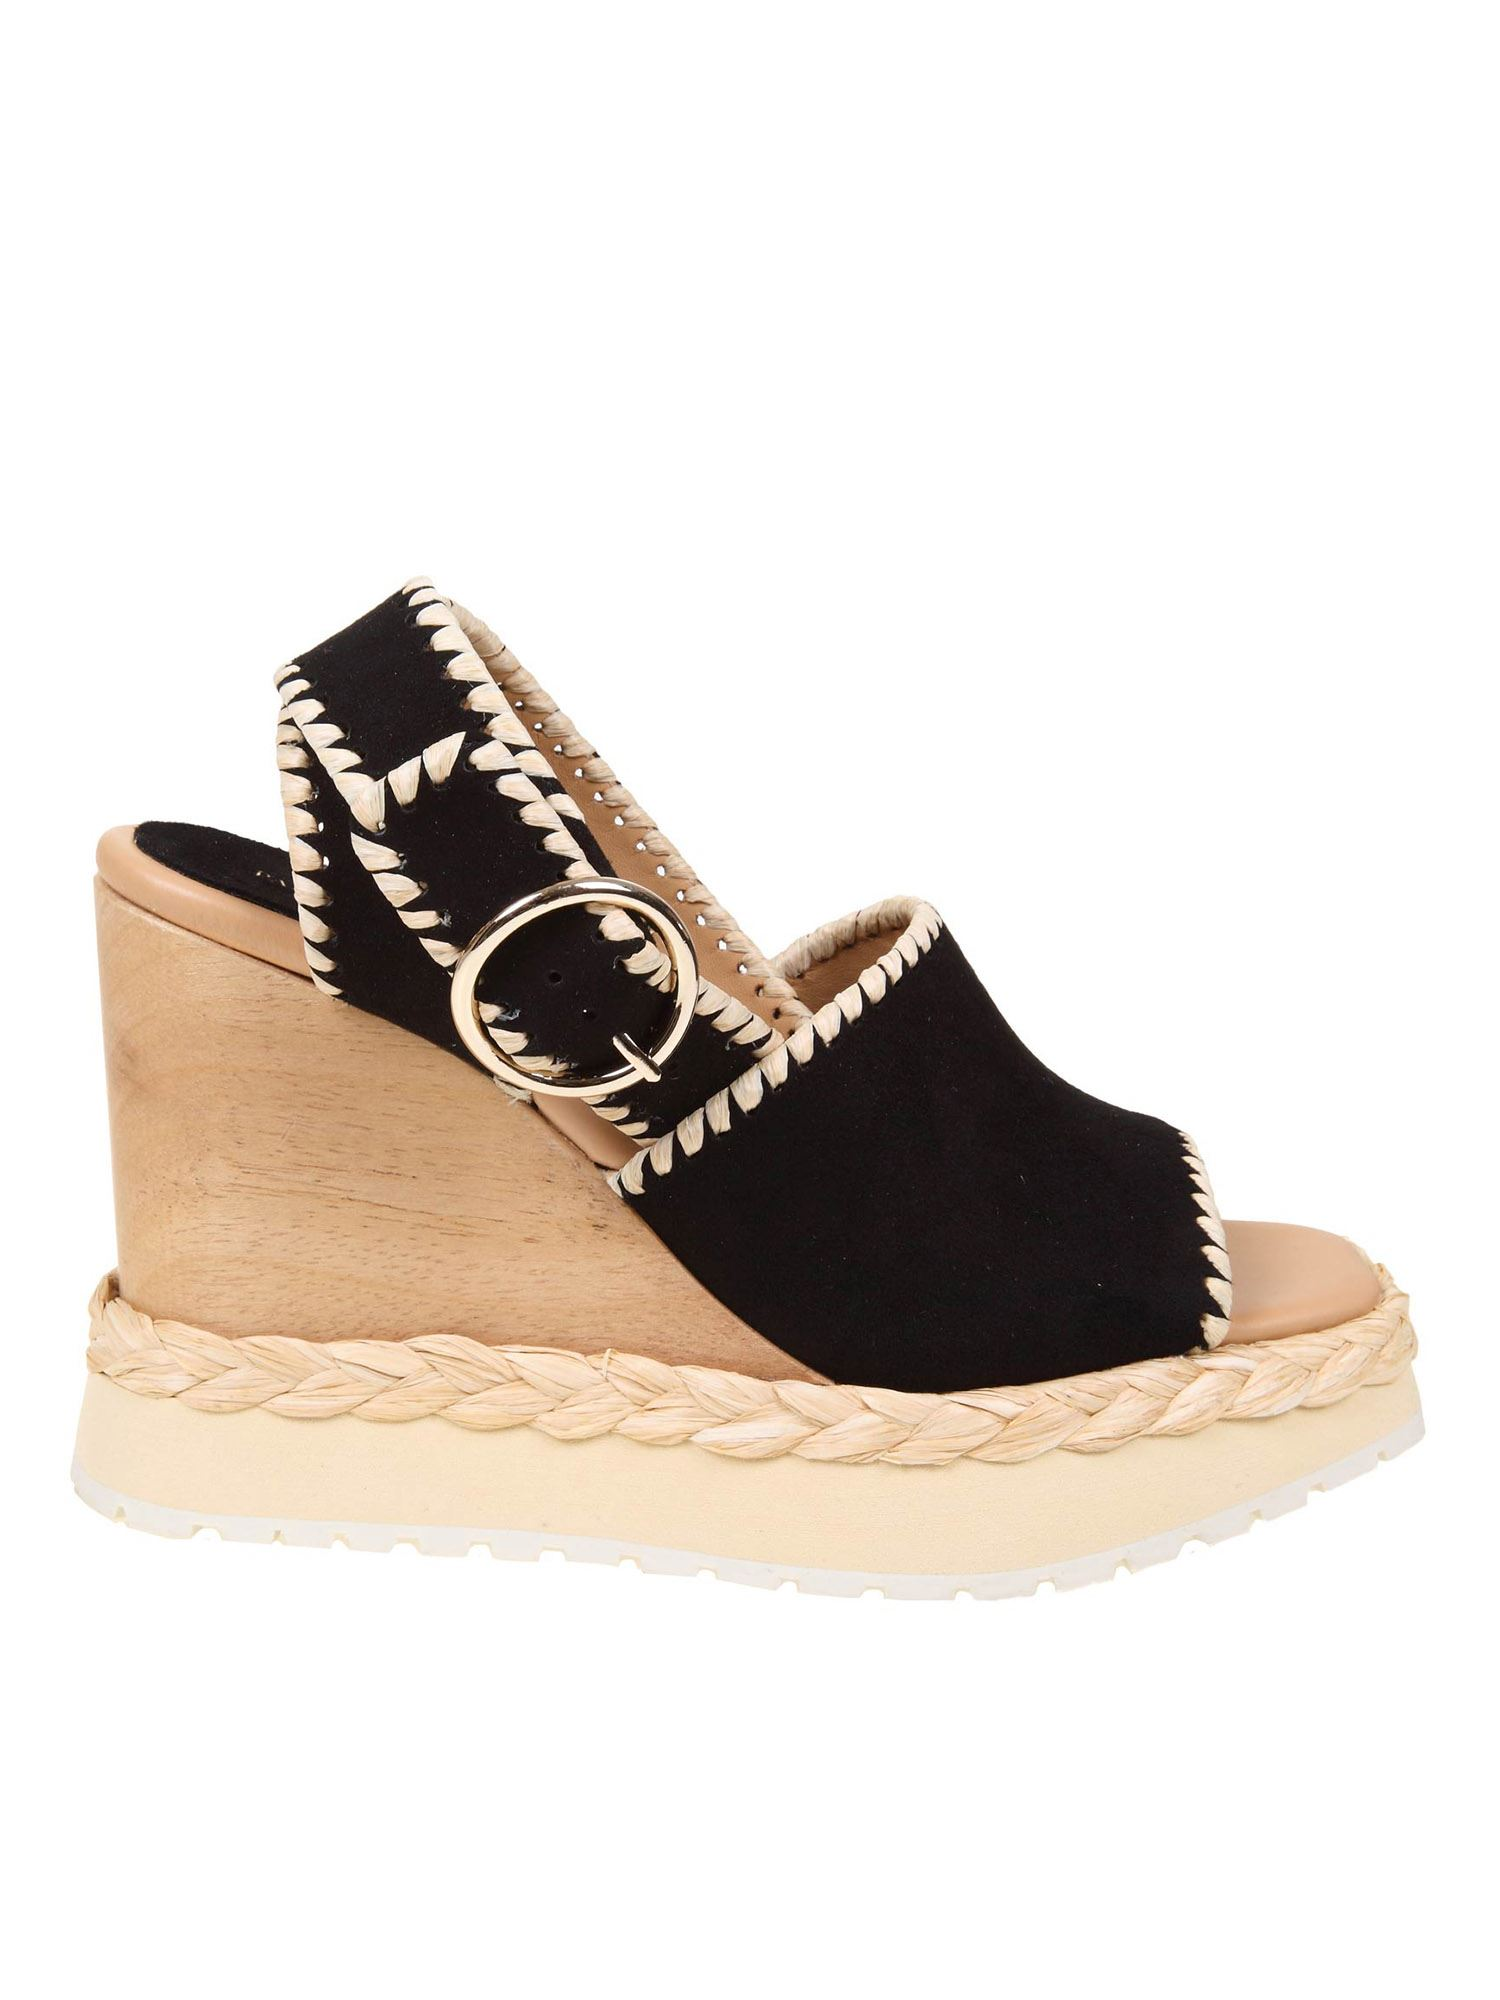 Paloma Barceló APURE SANDALS IN CAMOSCIO AND BLACK